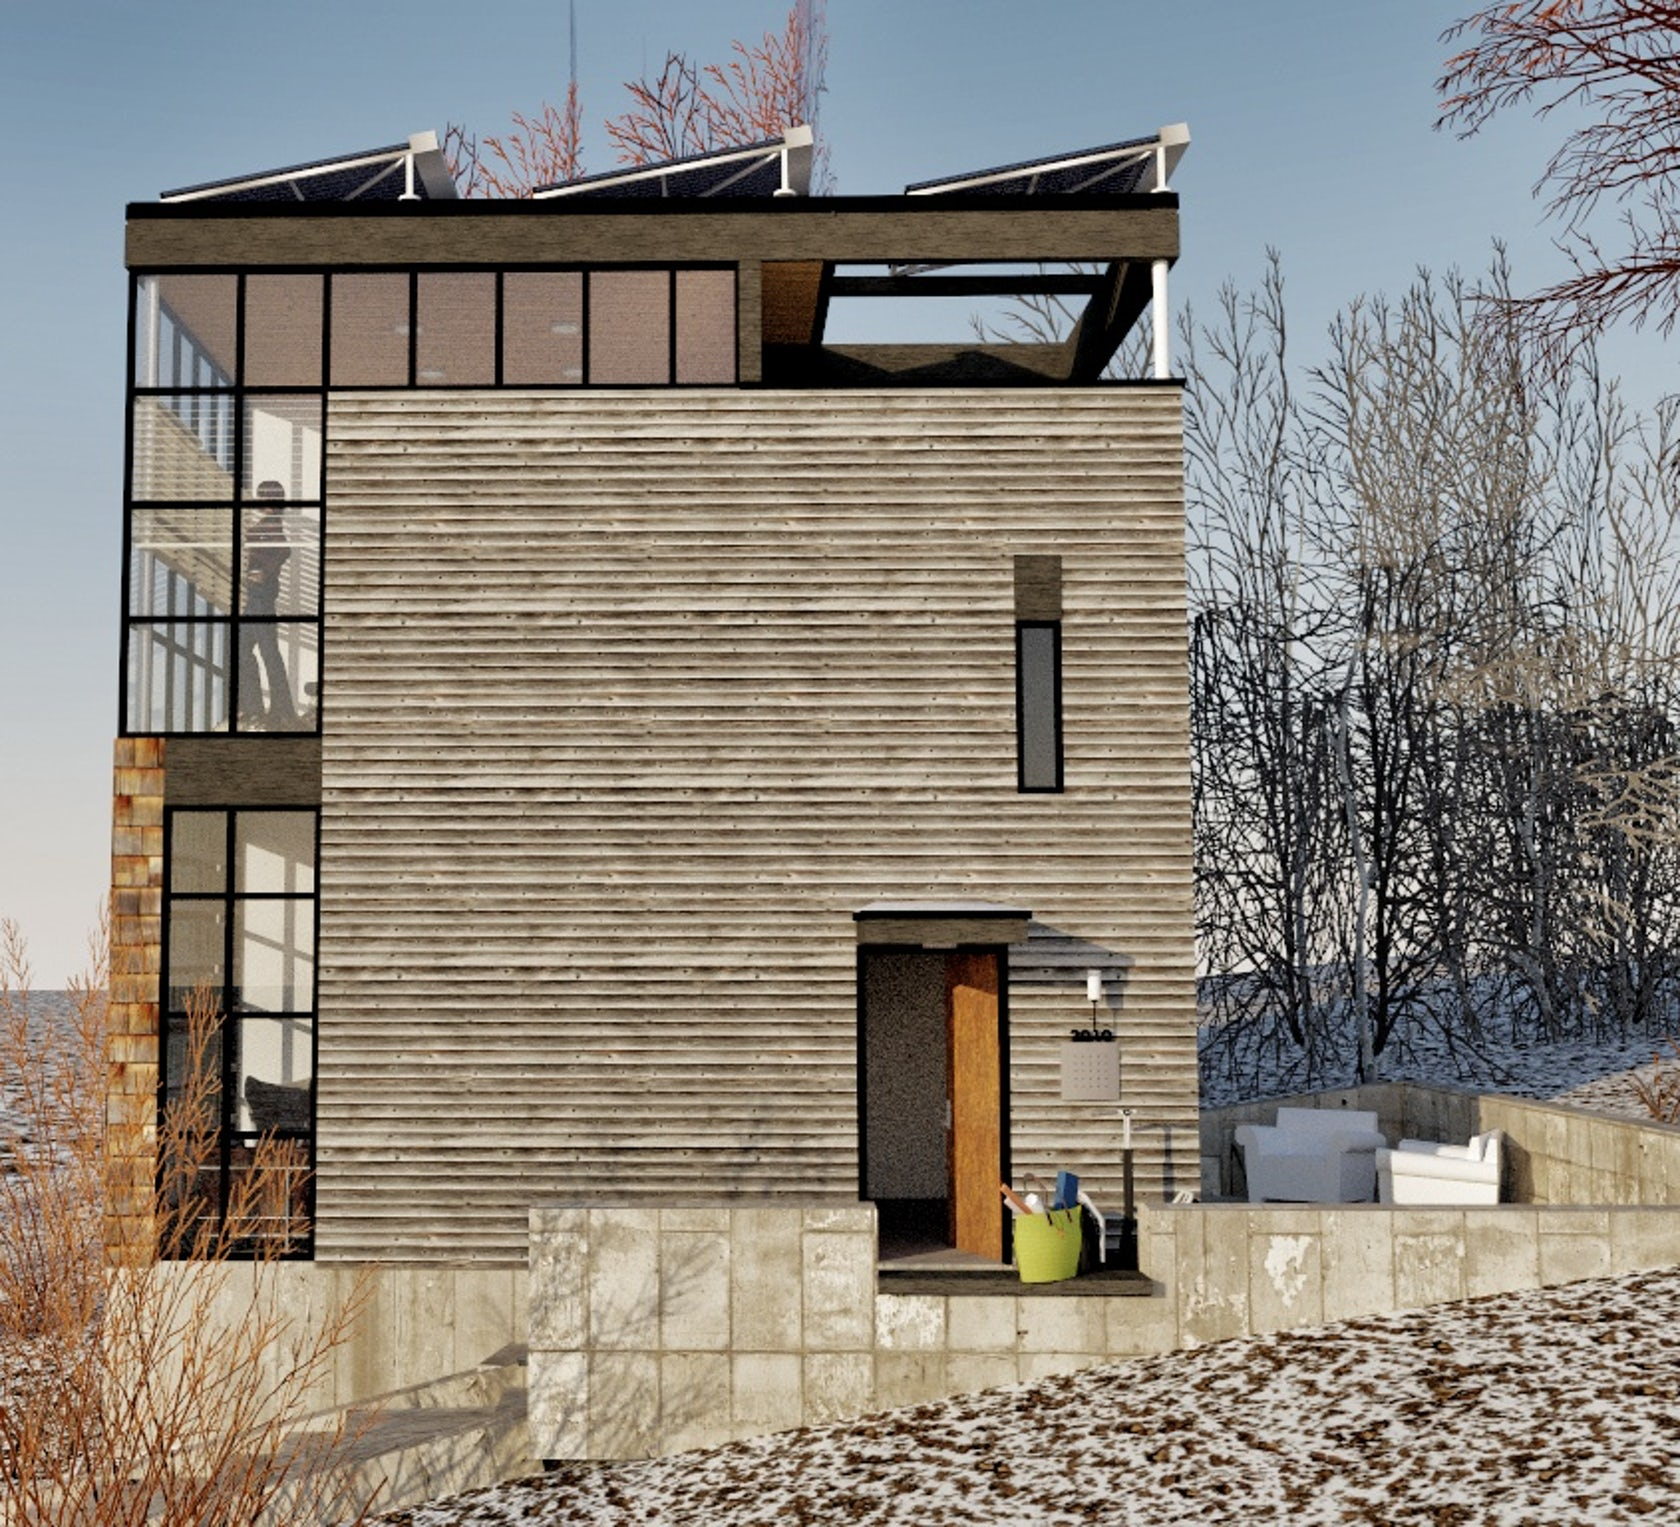 Affordable Accessory Dwelling Units Architizer